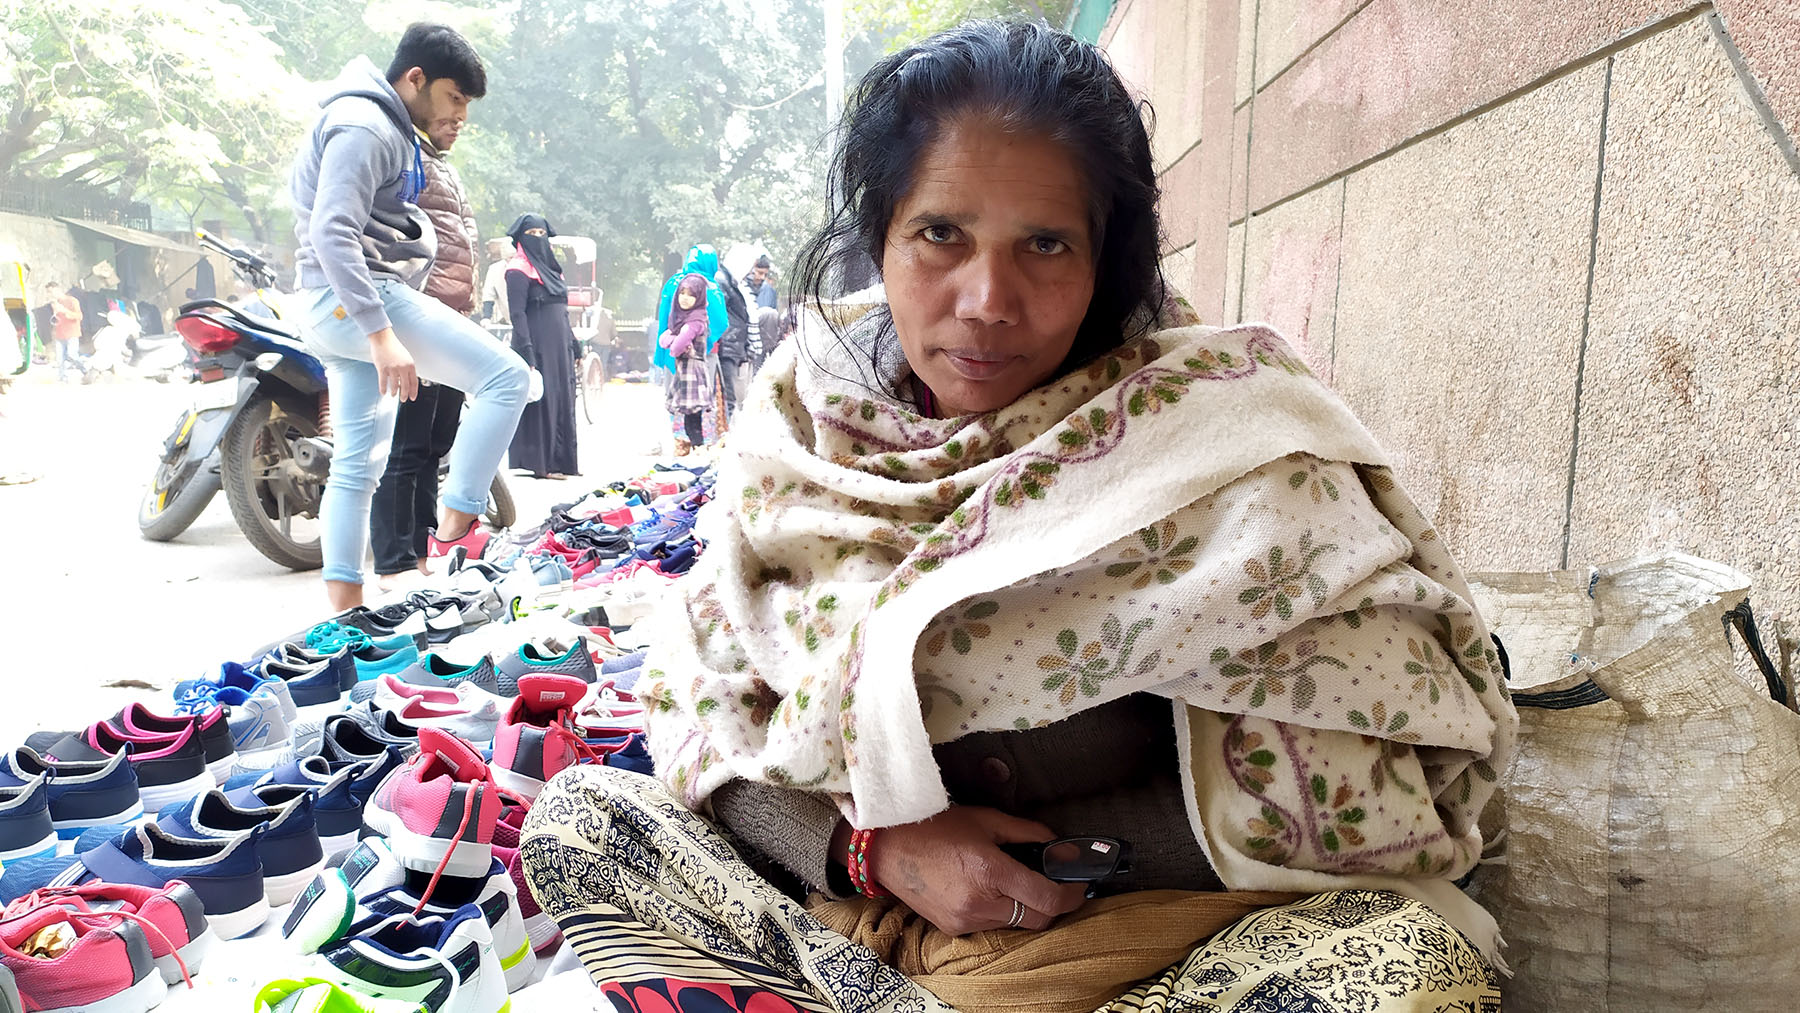 Women selling wares in the mahila bazaar say they must fend off drunken men, sexual harassment, thieves and other hazards, but having a market of their own is better than trying to sell in markets dominated by men, where they are also hassled by police and municipal authorities.